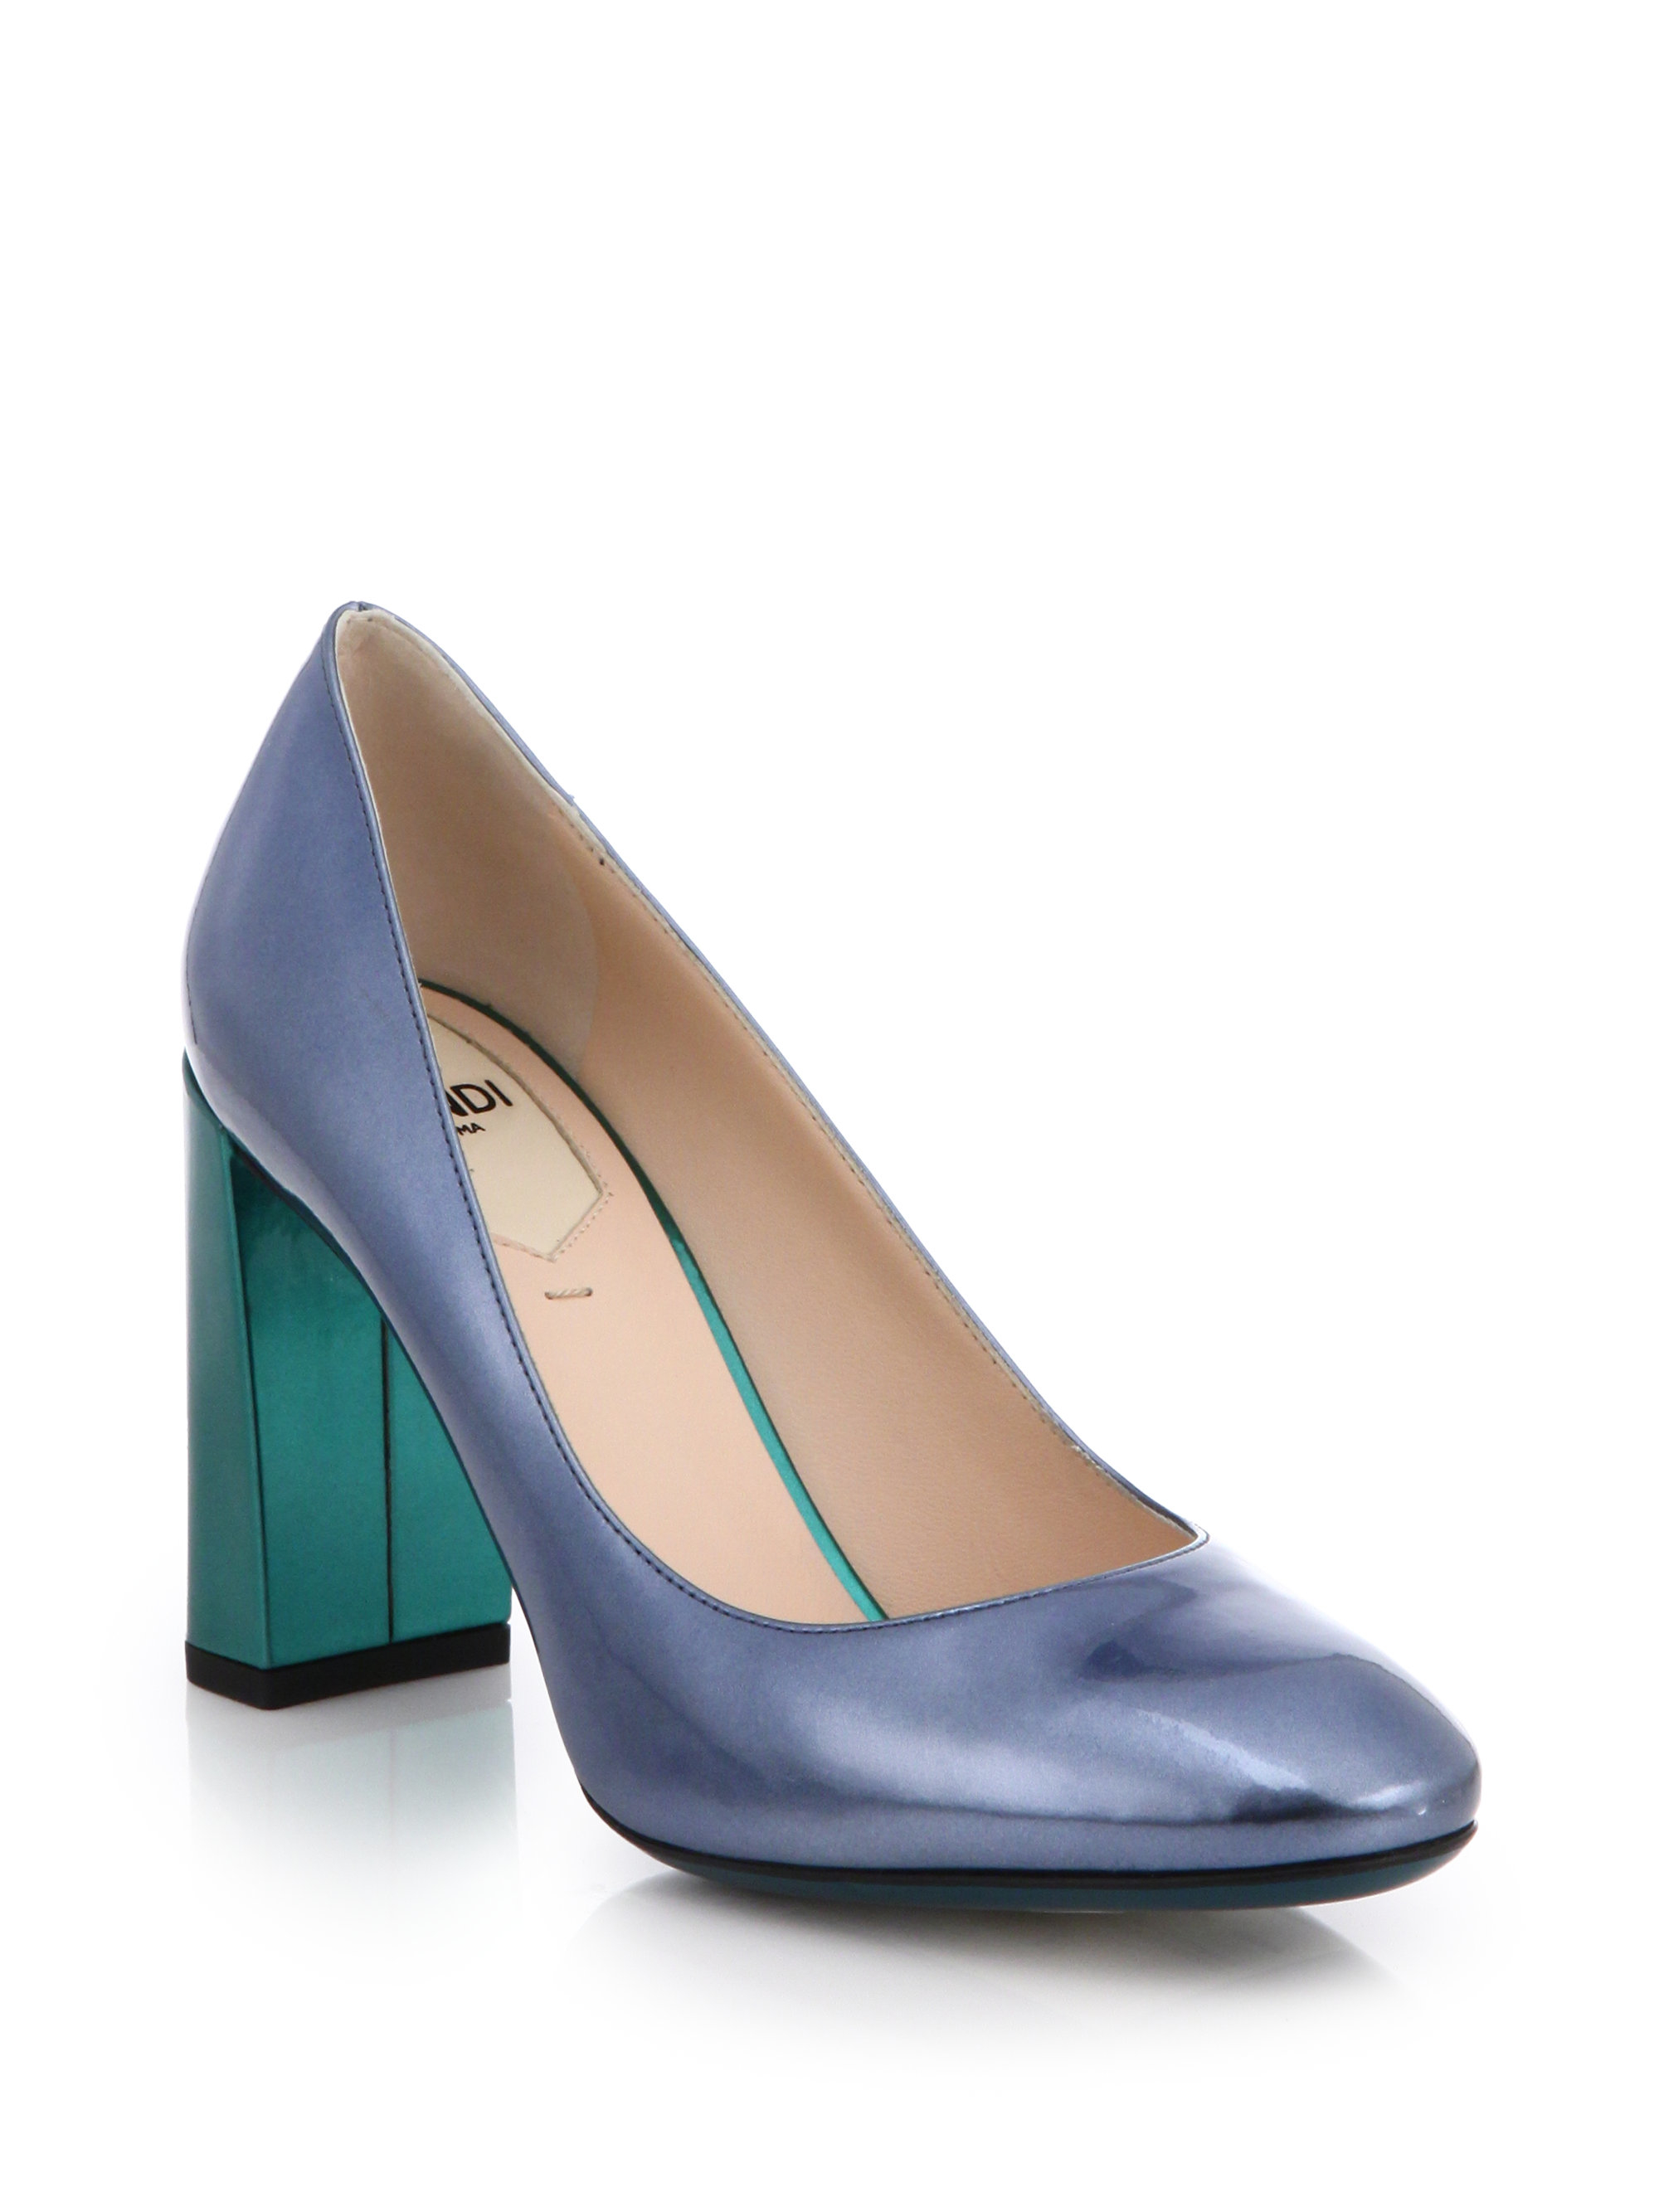 Lyst Fendi Two Tone Metallic Patent Leather Pumps In Blue